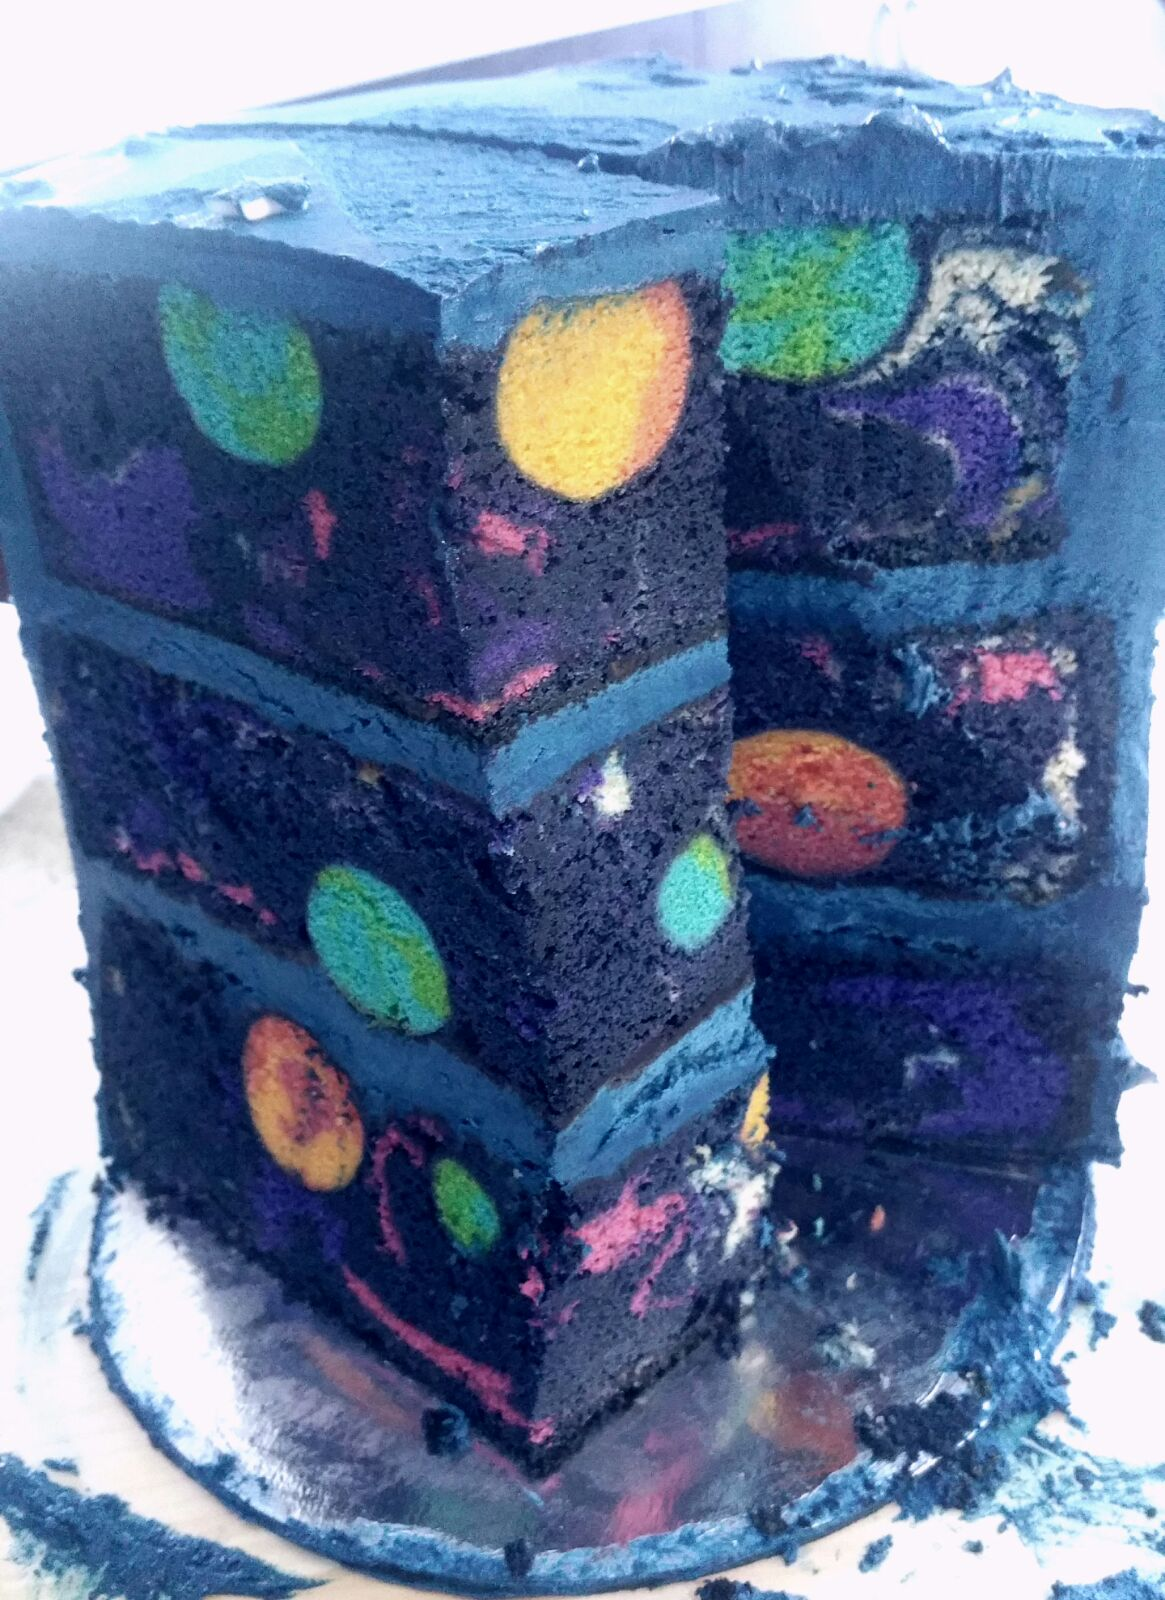 Space Birthday Cake Reveals an Out-of-This-World Surprise When Sliced